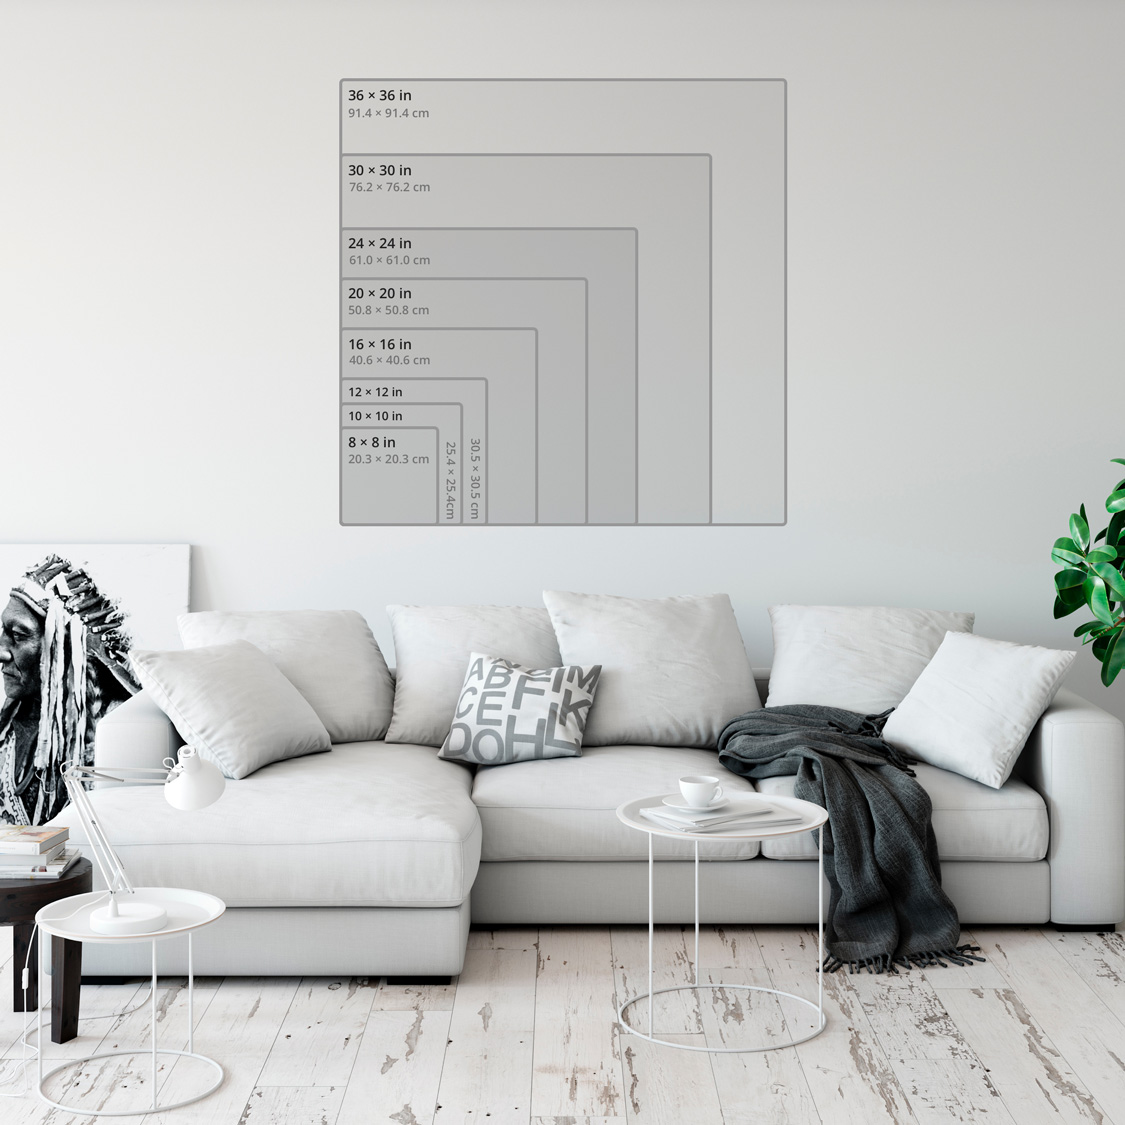 Prints sizes aspect ratio 1.00